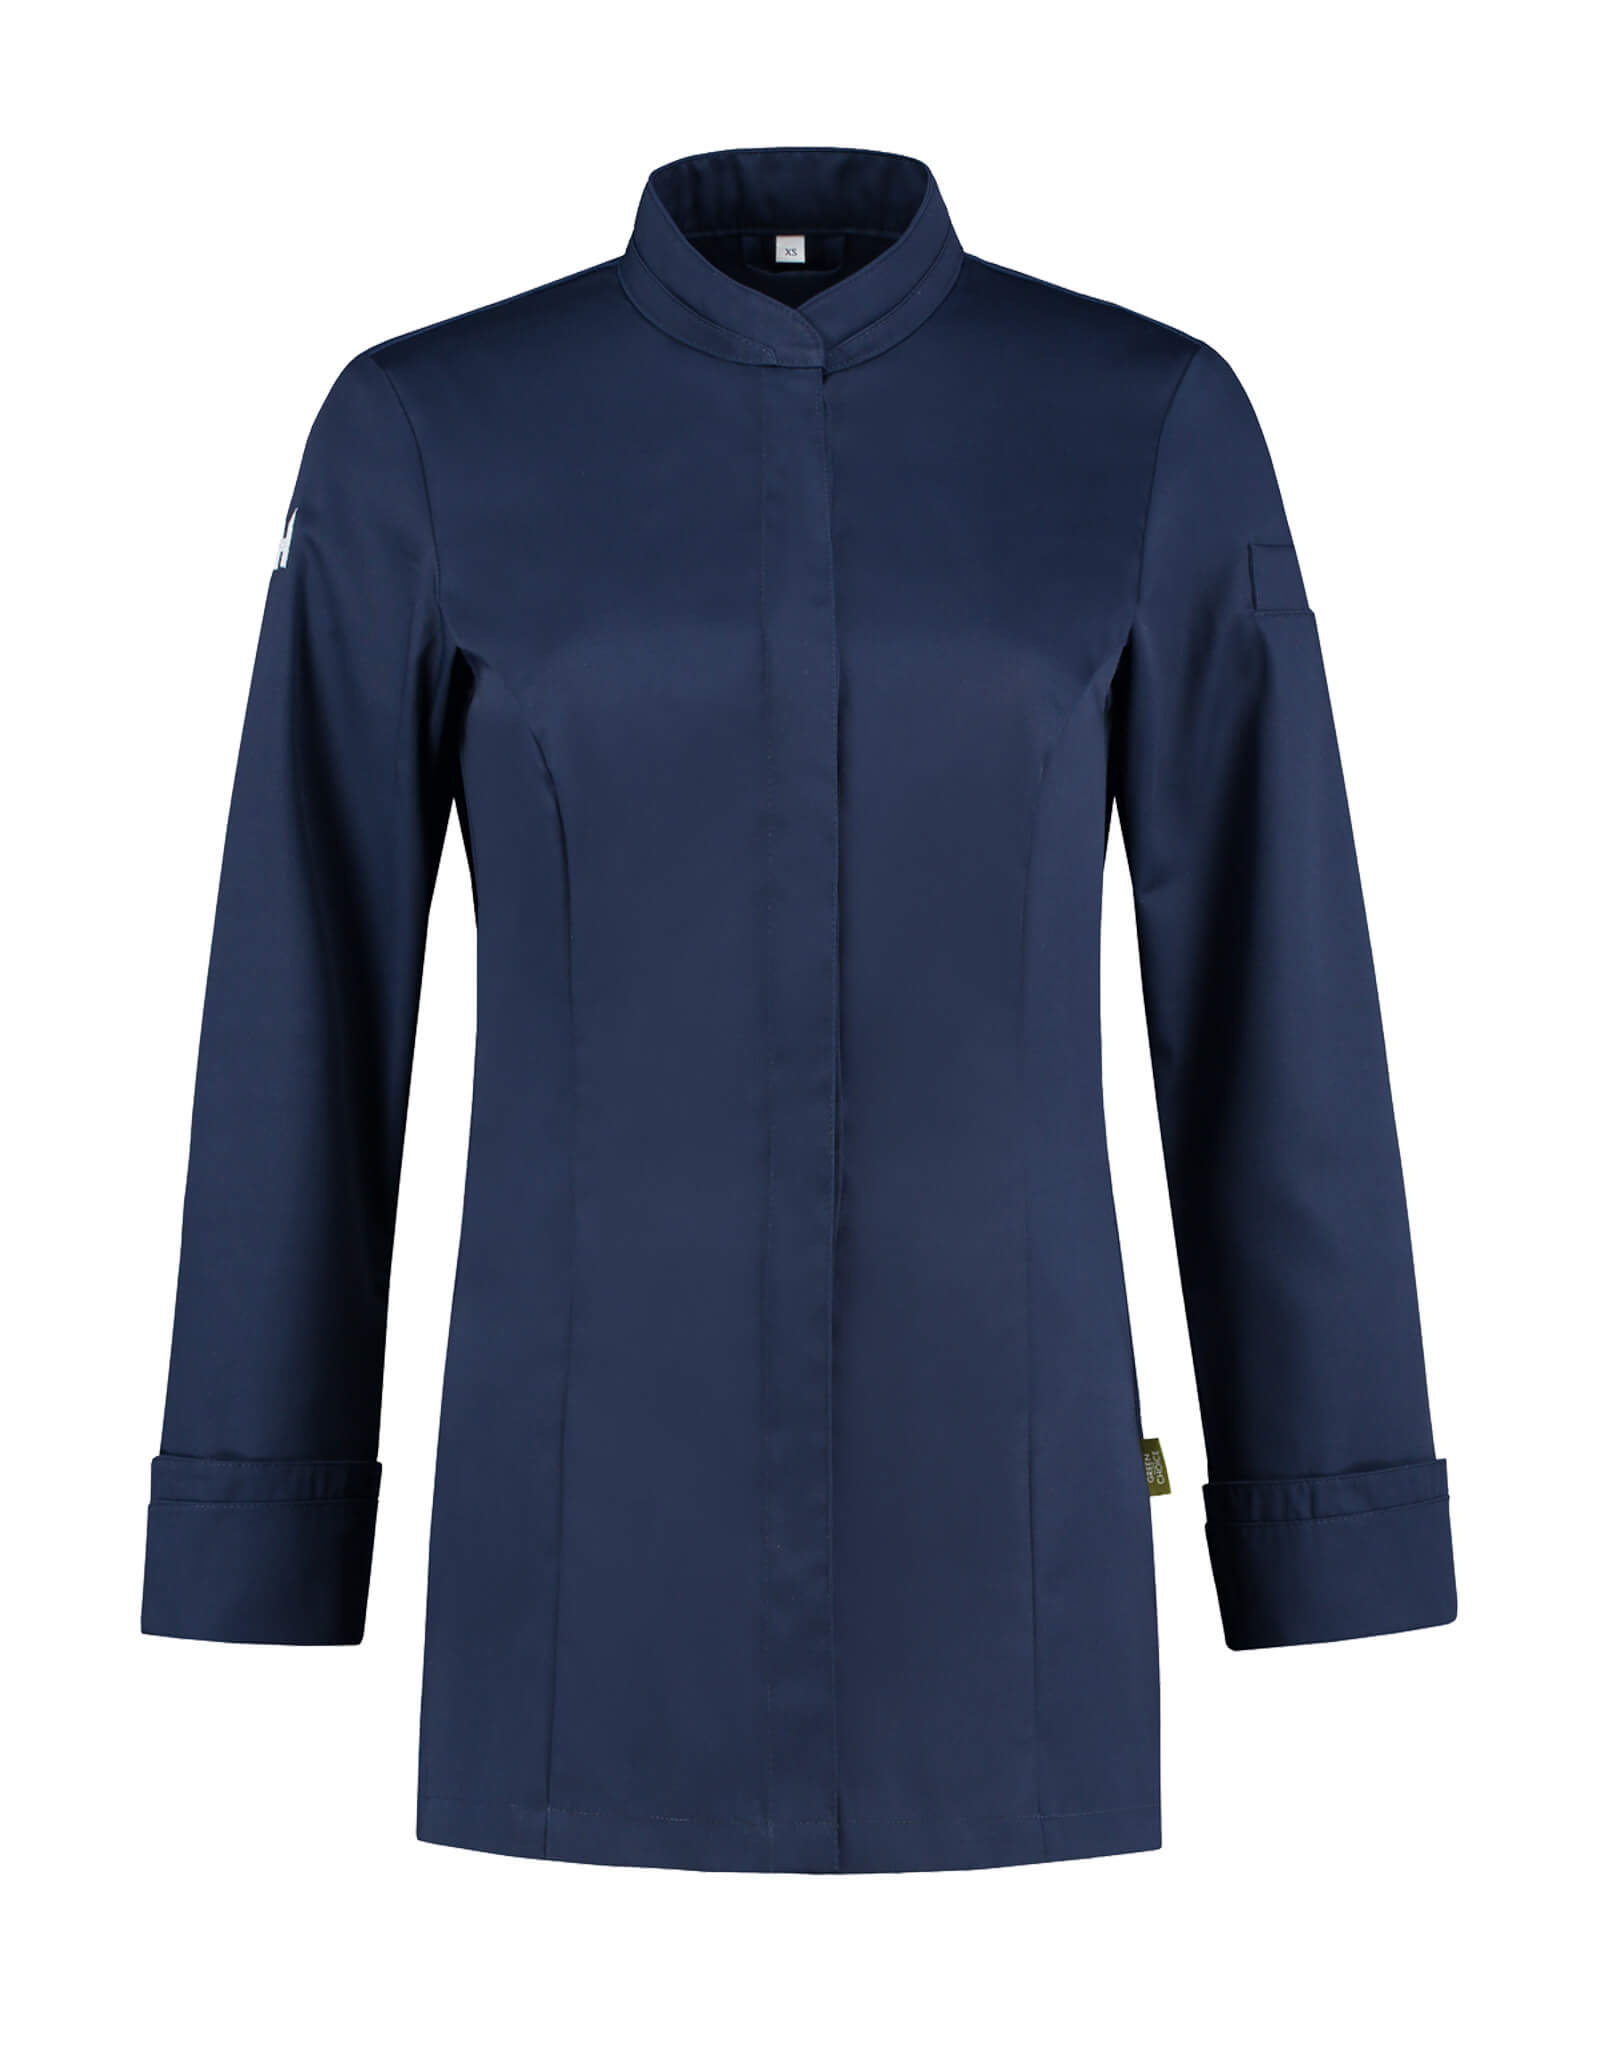 Veste Cuisine Elise Patriot Blue